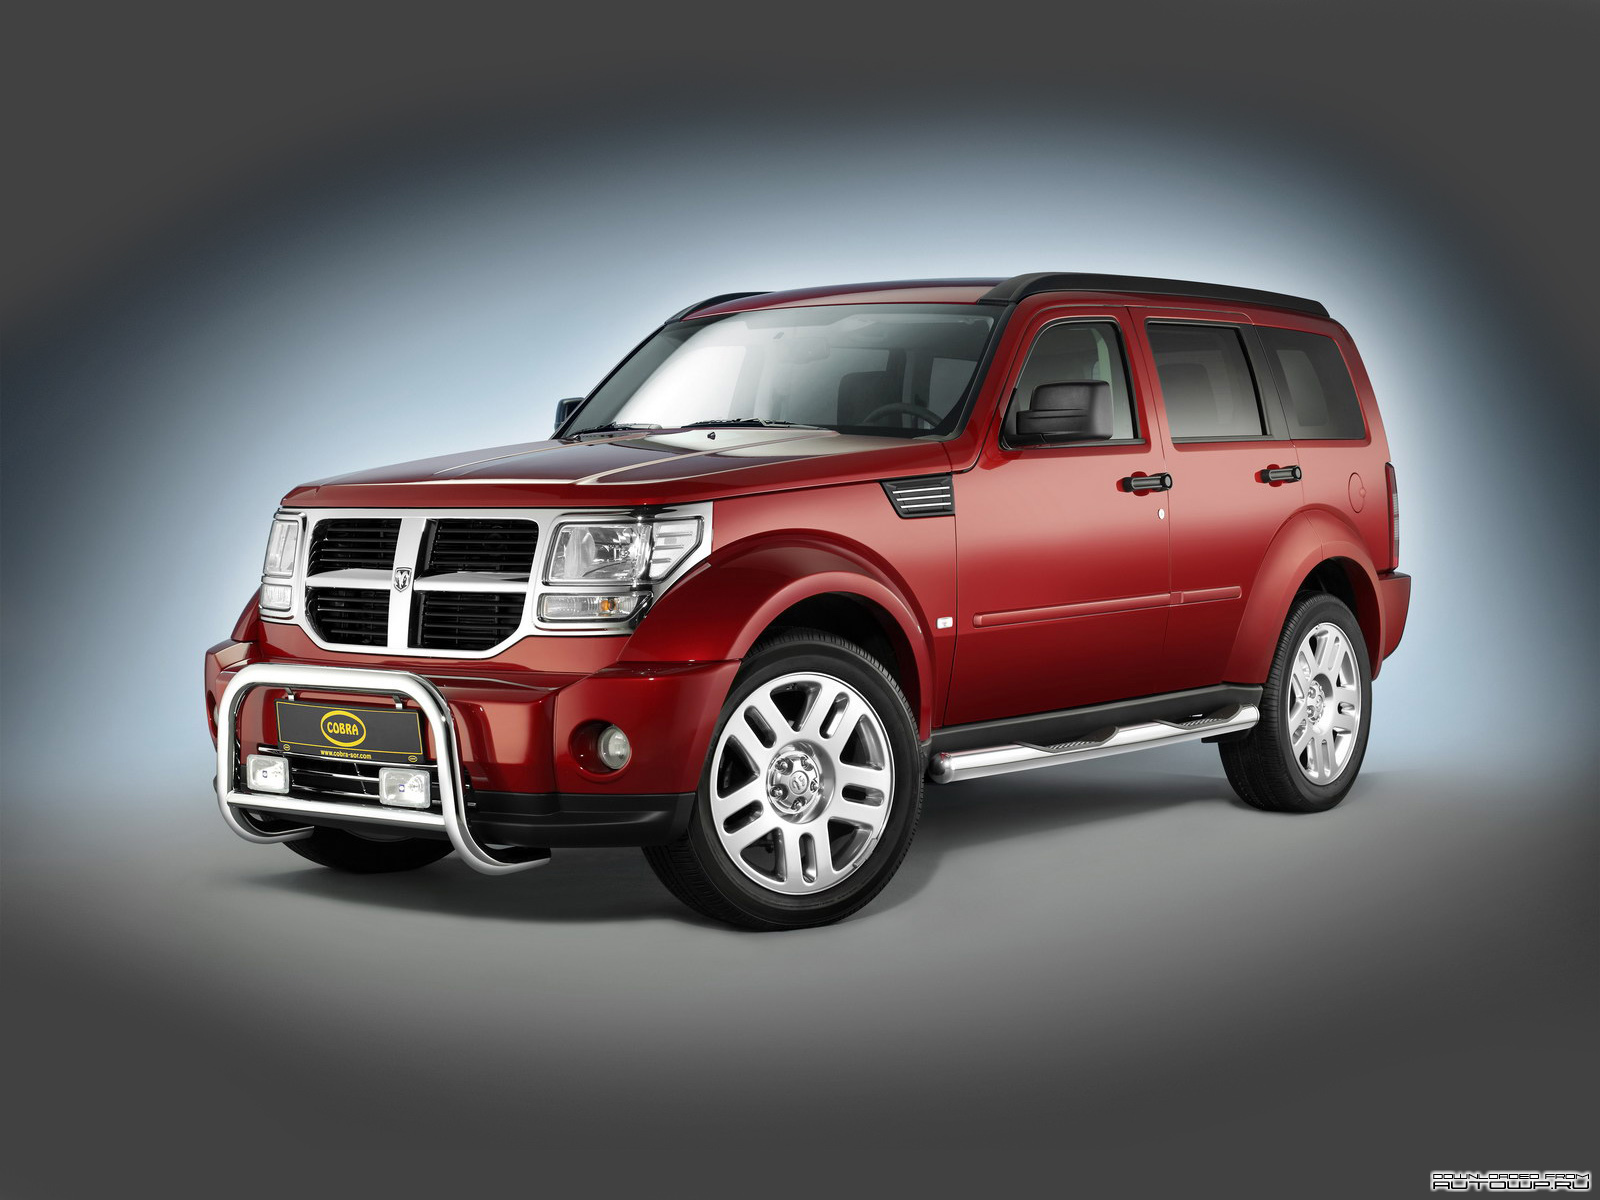 Cobra Dodge Nitro photo 60012